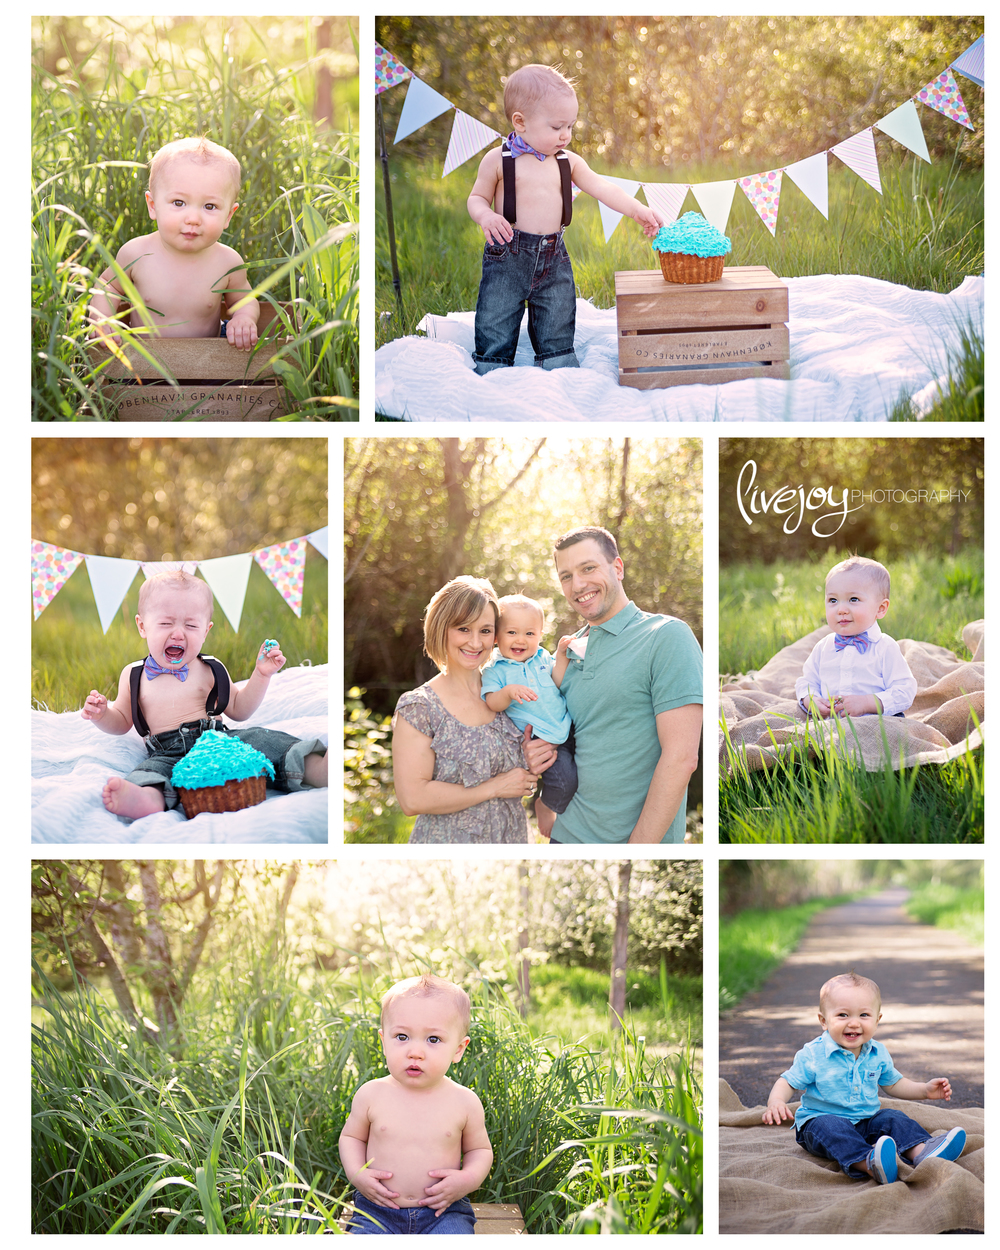 Baby 1 Year Photos and Cake Smash | LiveJoy Photography | Oregon